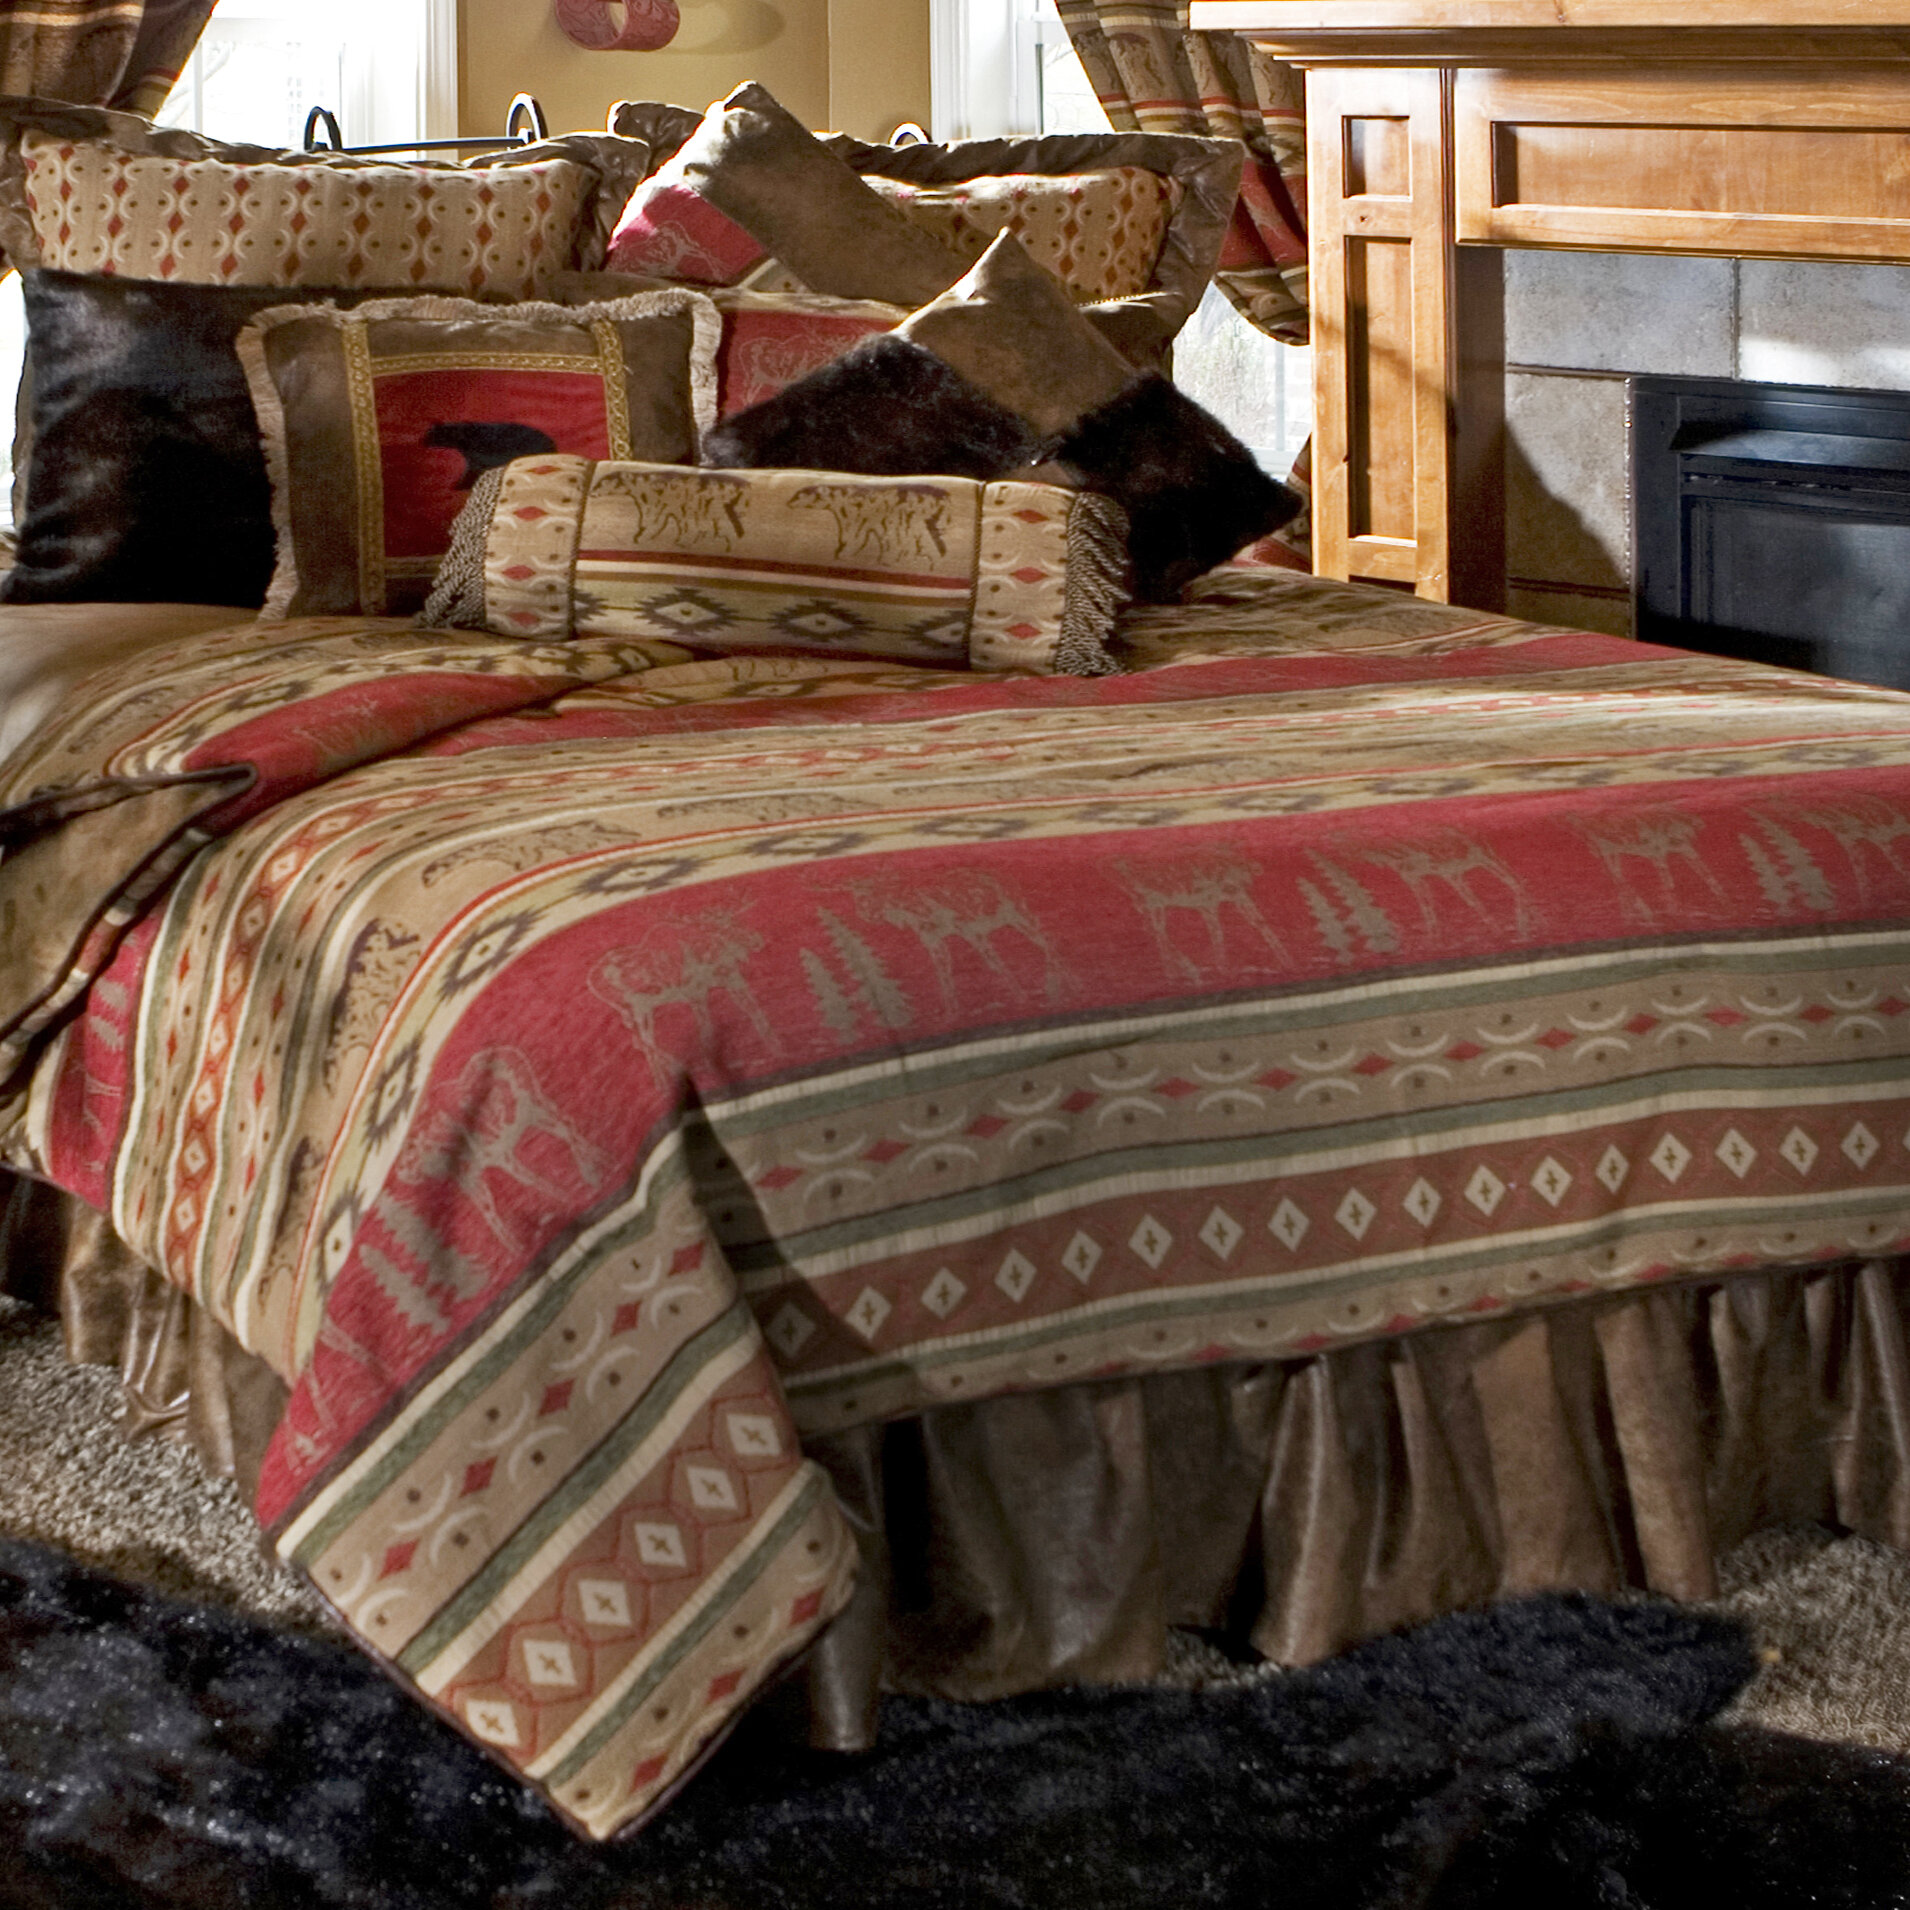 diamond pleat flannel bar home marvelous bedding light on covers iii rustic twin teal gorgeous duvet cover amazing red xl